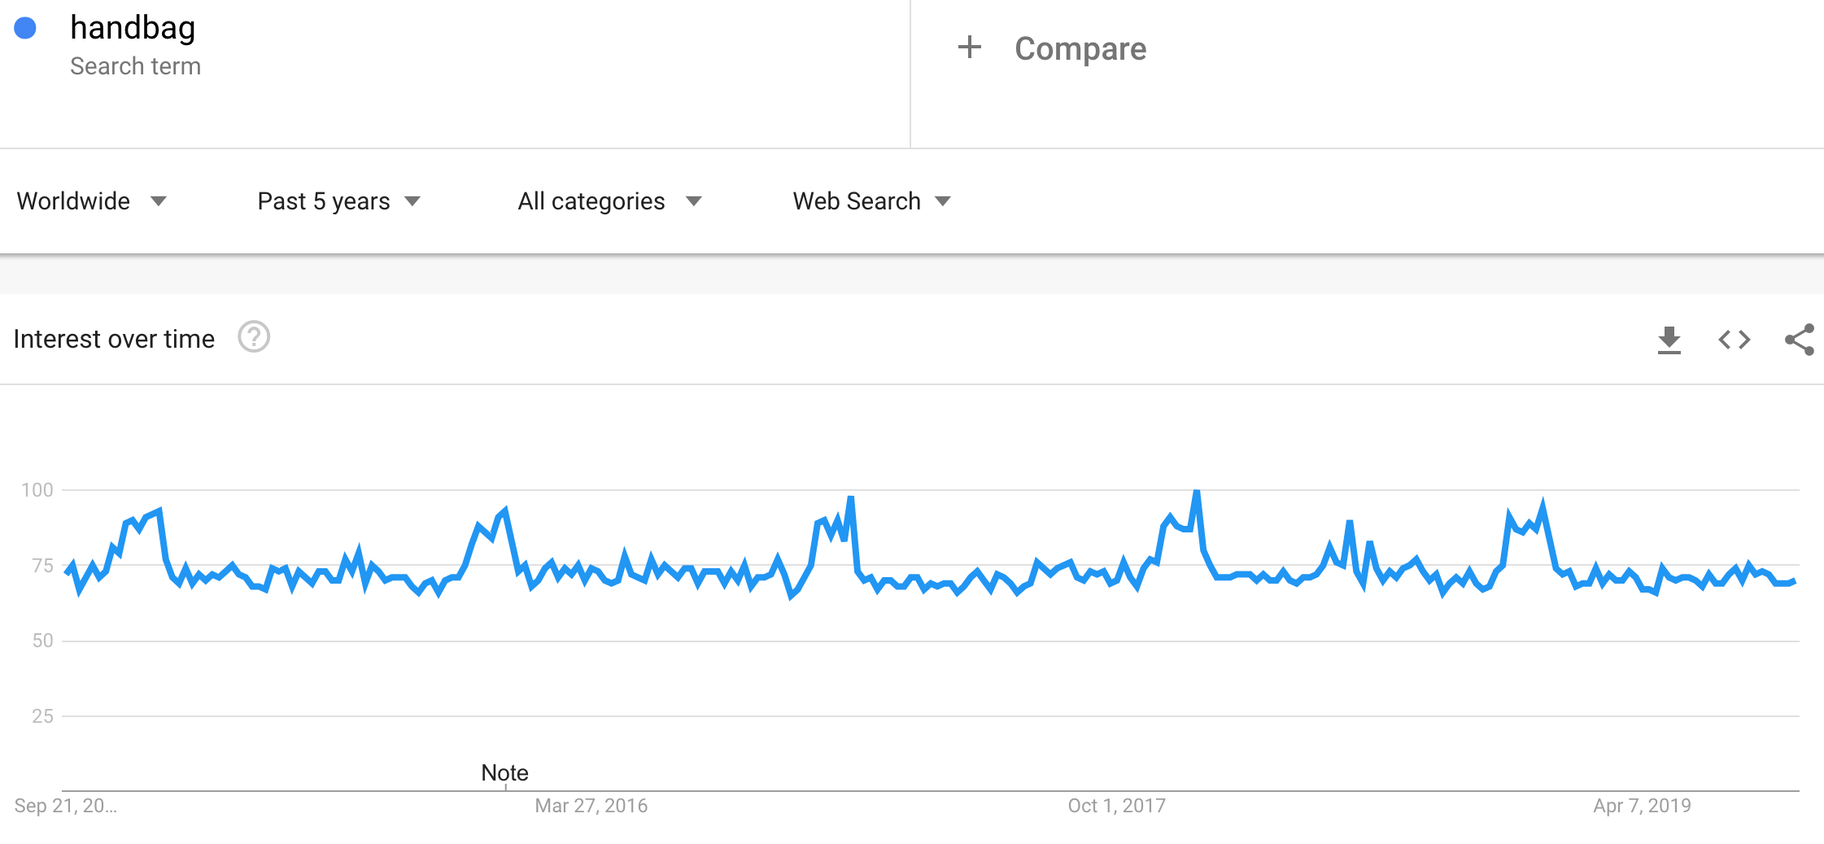 Google trends showing popularity of the search term 'handbags'